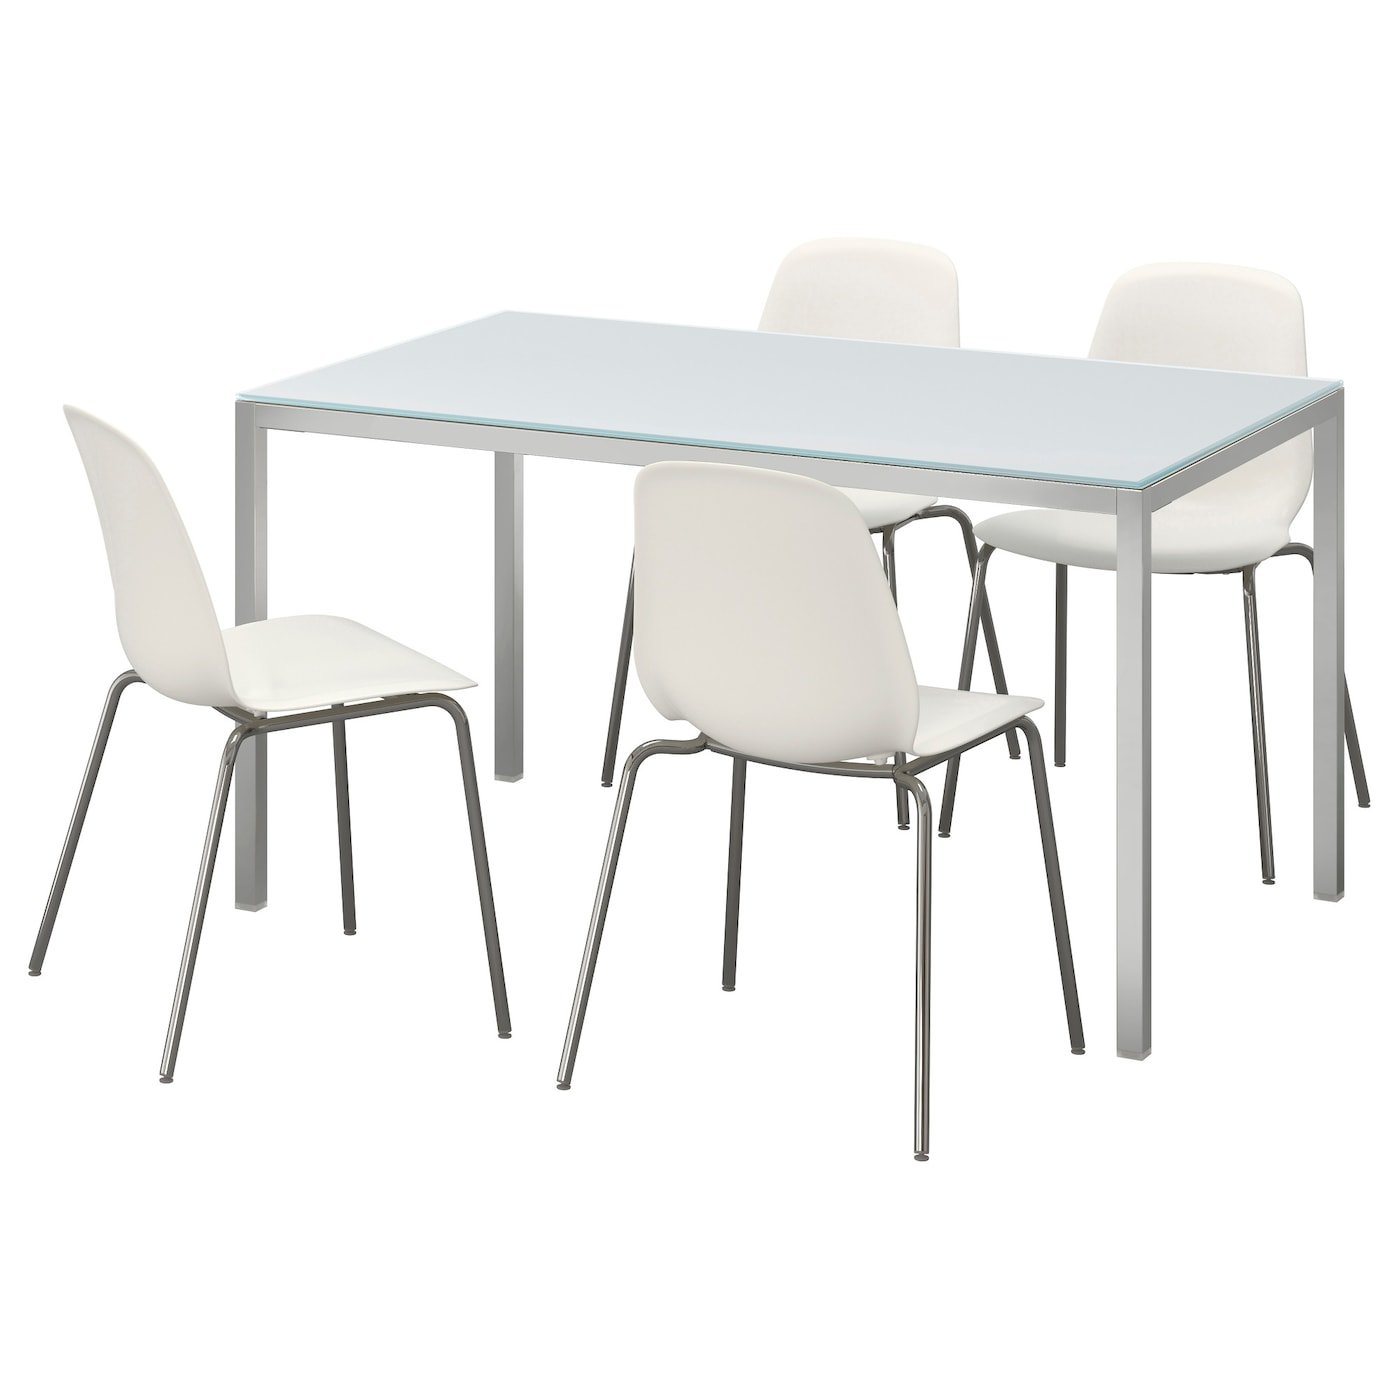 torsby leifarne table and 4 chairs glass white white 135